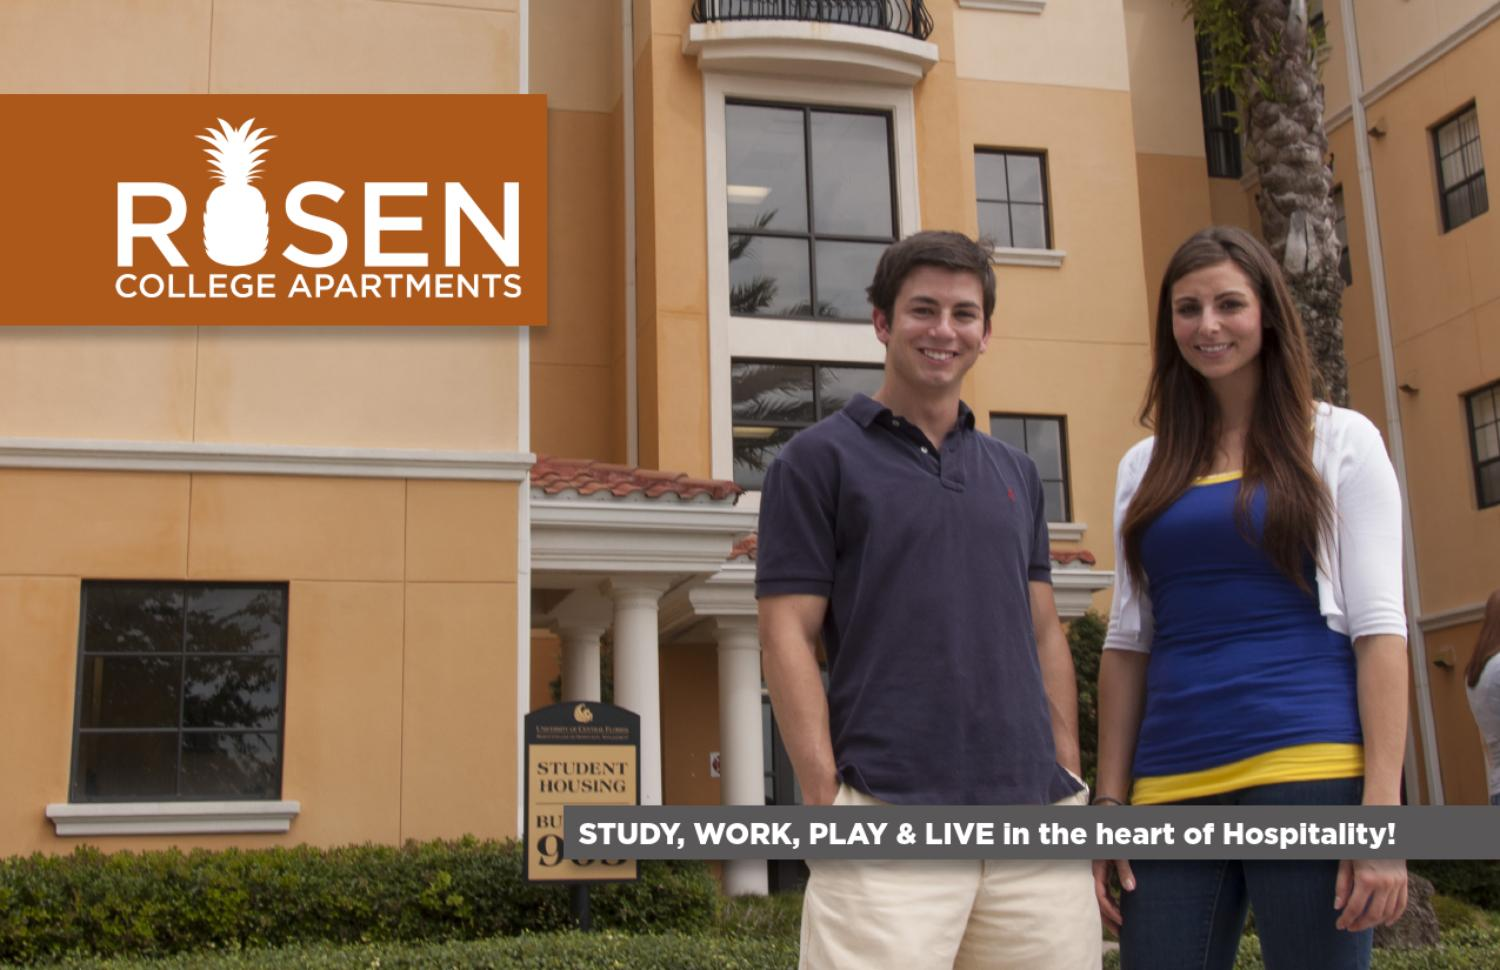 Rosen College Apartments By Ucf Department Of Housing And Residence Life Issuu